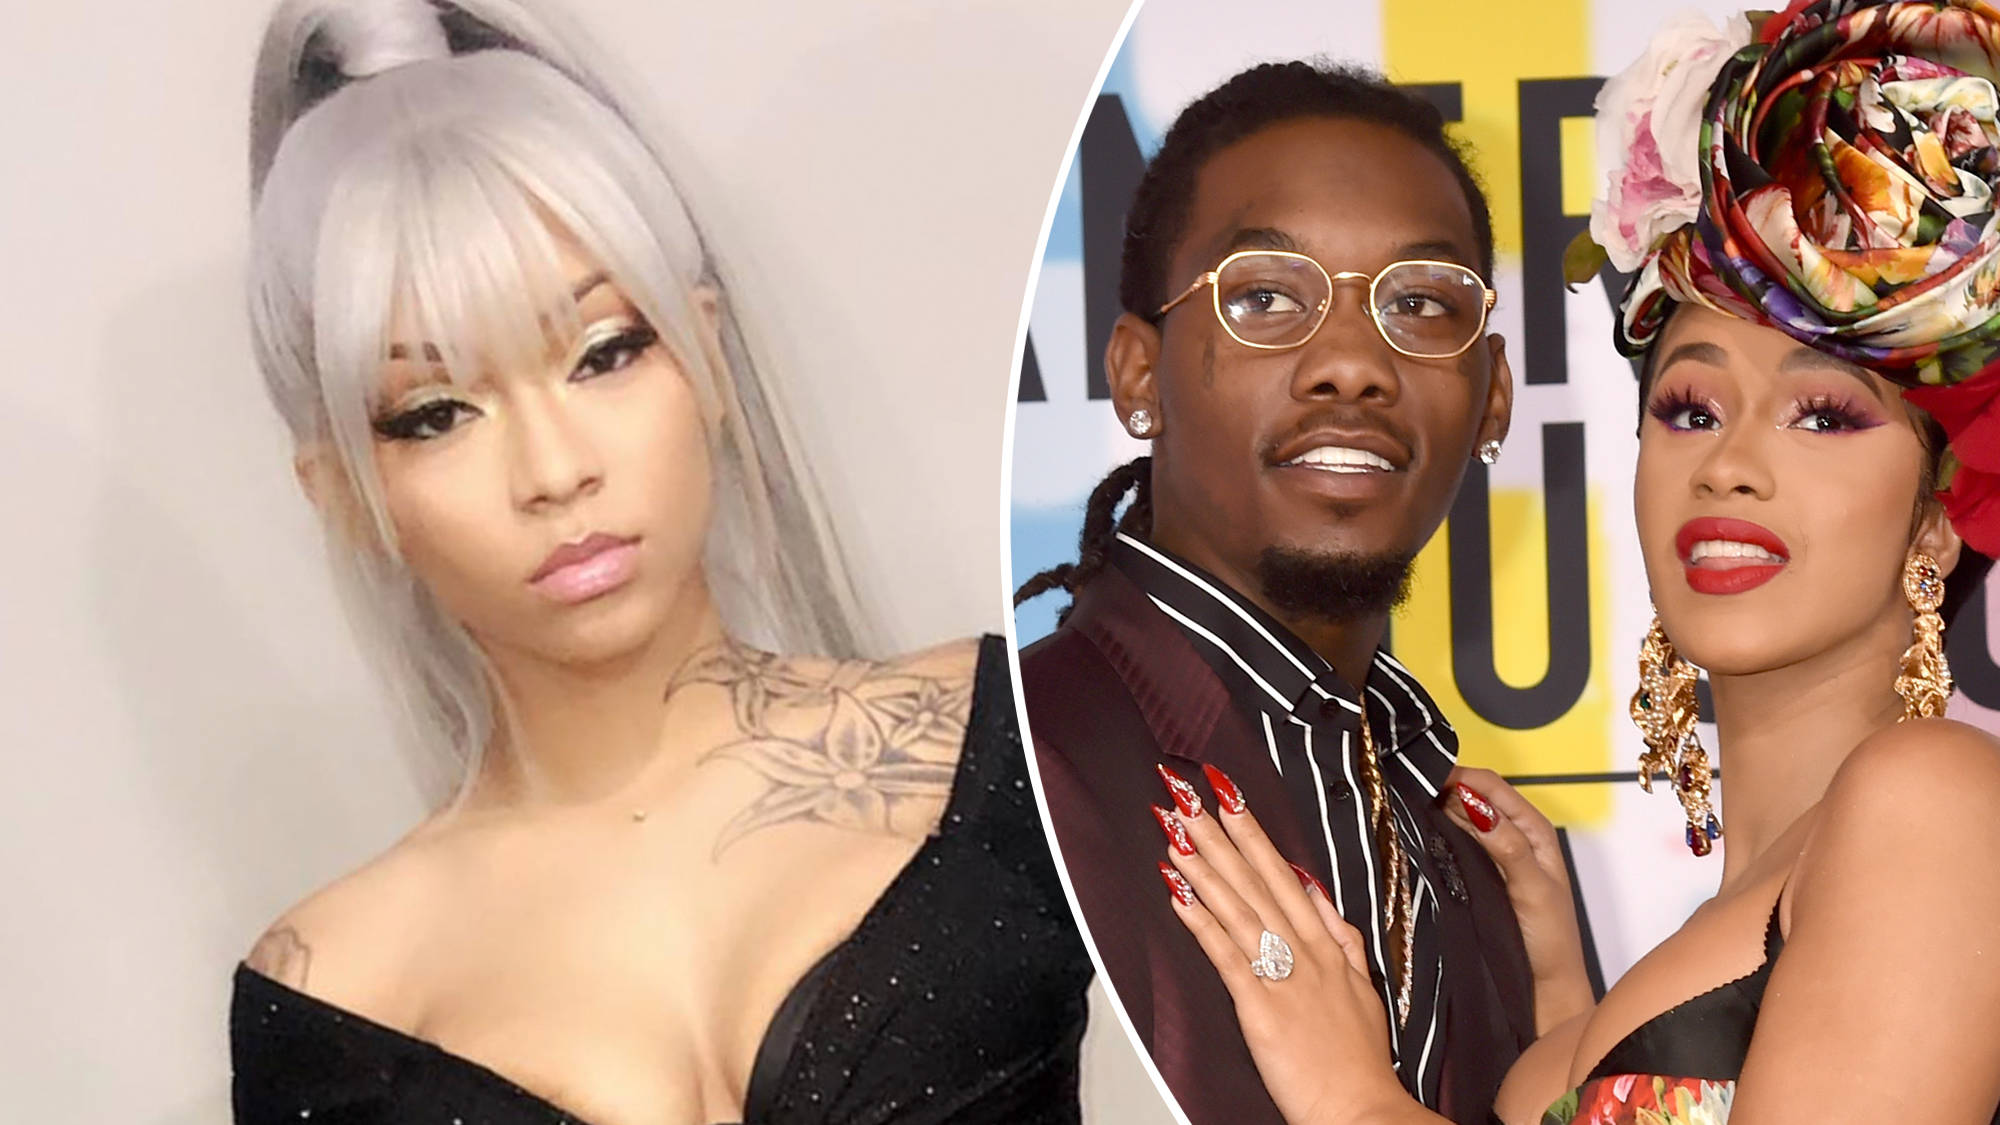 Offset Reportedly Seems To Confirm Having A Threesome